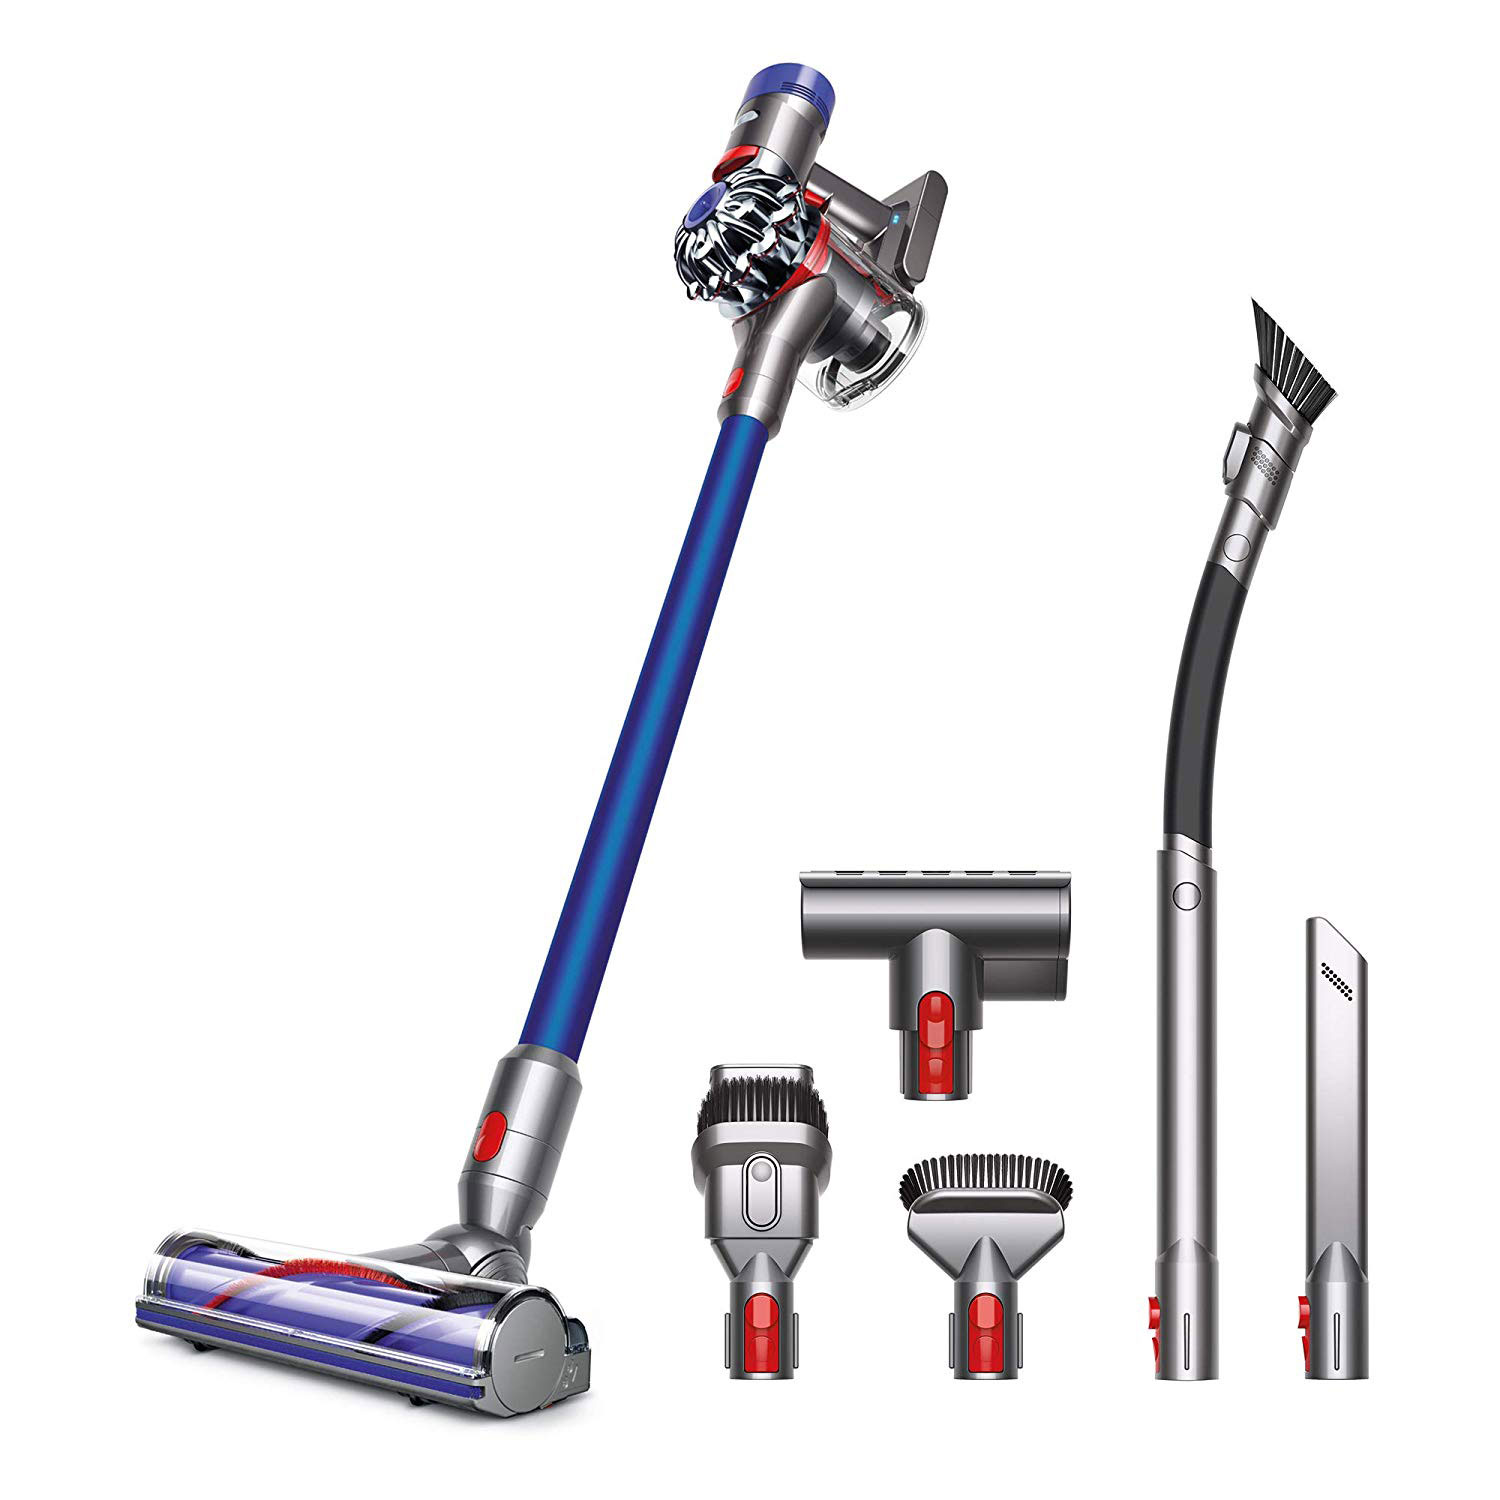 Dyson V7 Animal Pro+ Cordless Vacuum Cleaner with Extra Tools